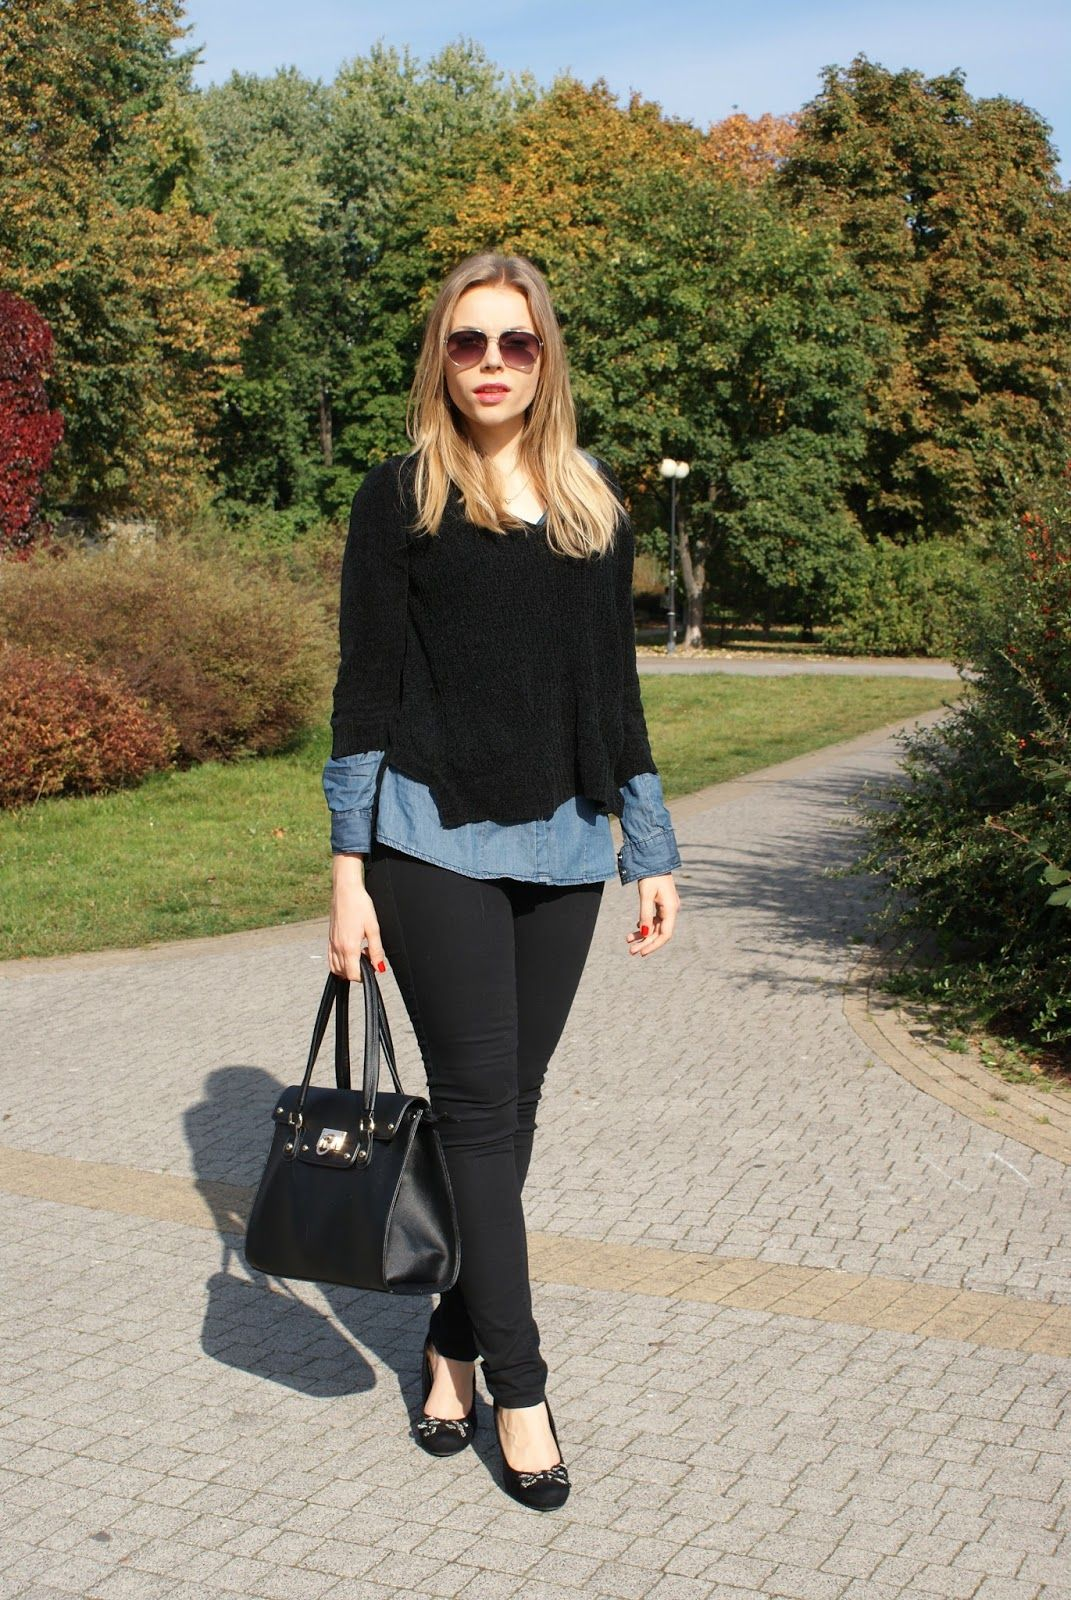 360b63a8bf Shop this look on Lookastic  http   lookastic.com women